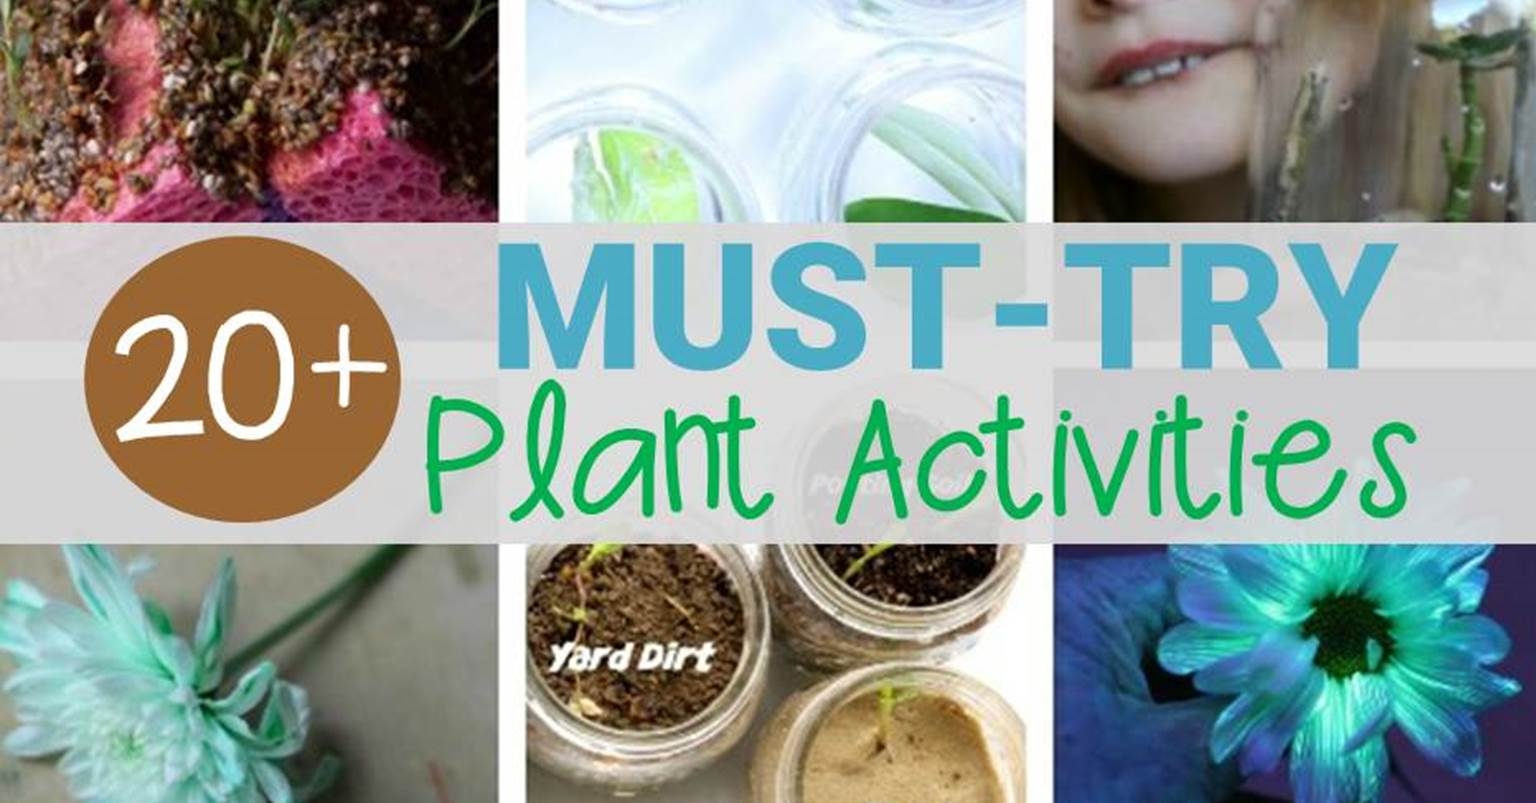 Must Try Plant Activities Kids Will Love